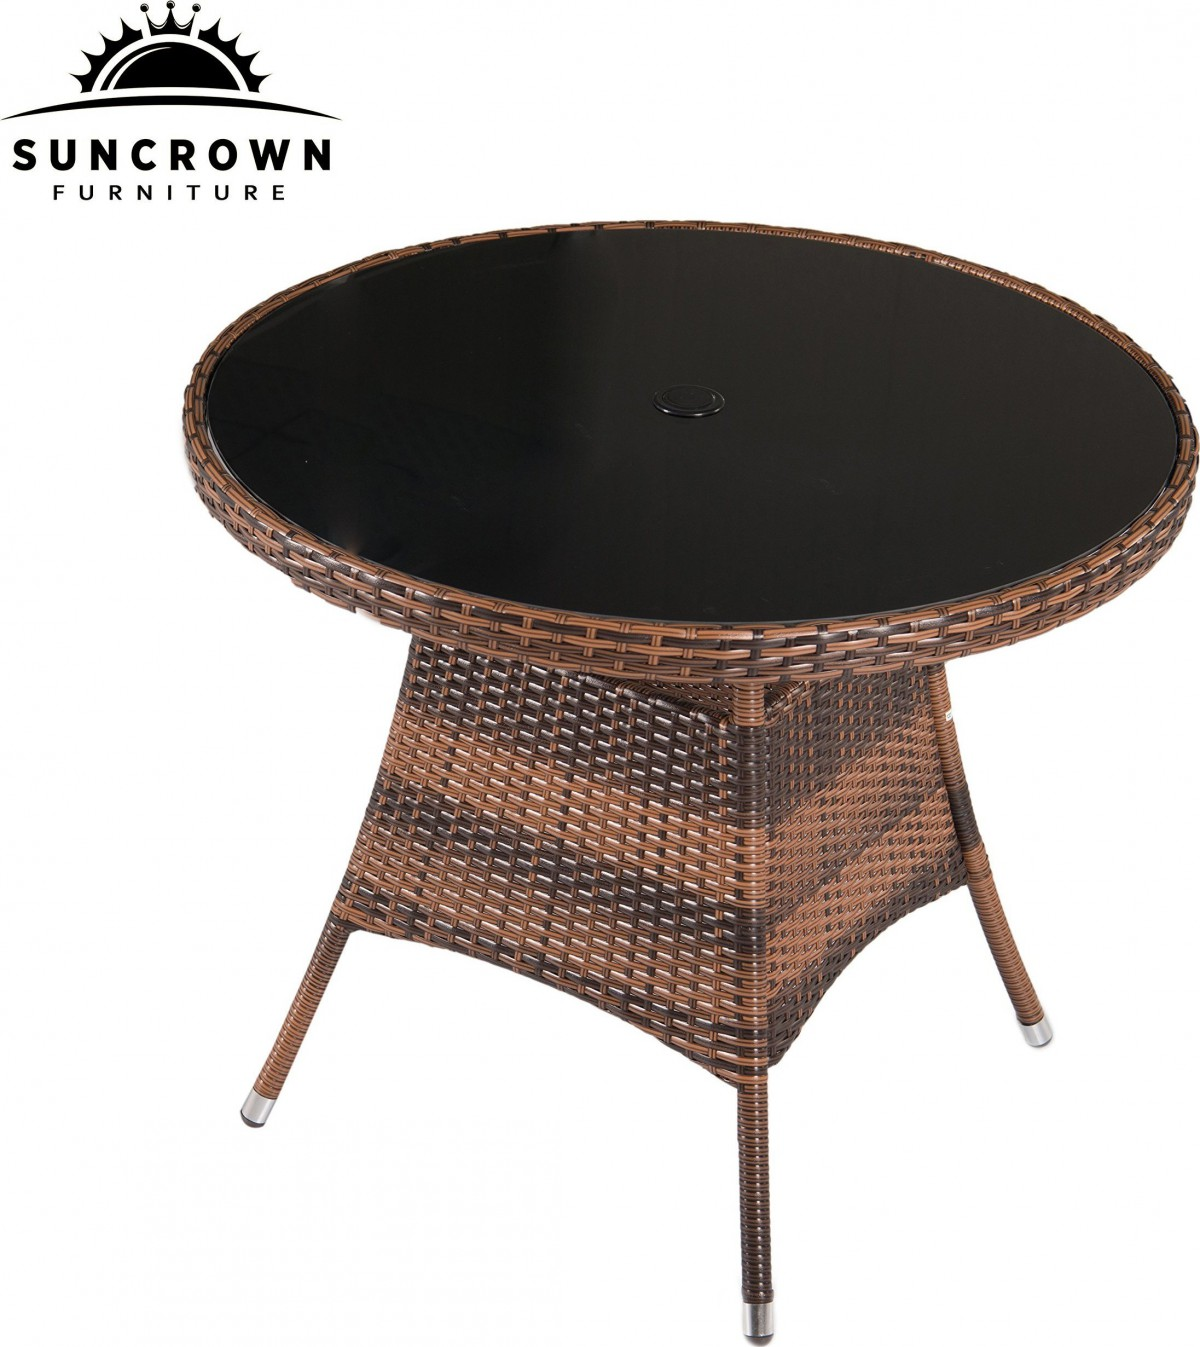 Suncrown 5 Piece Wicker Outdoor Dining Set with 35″ Round Table